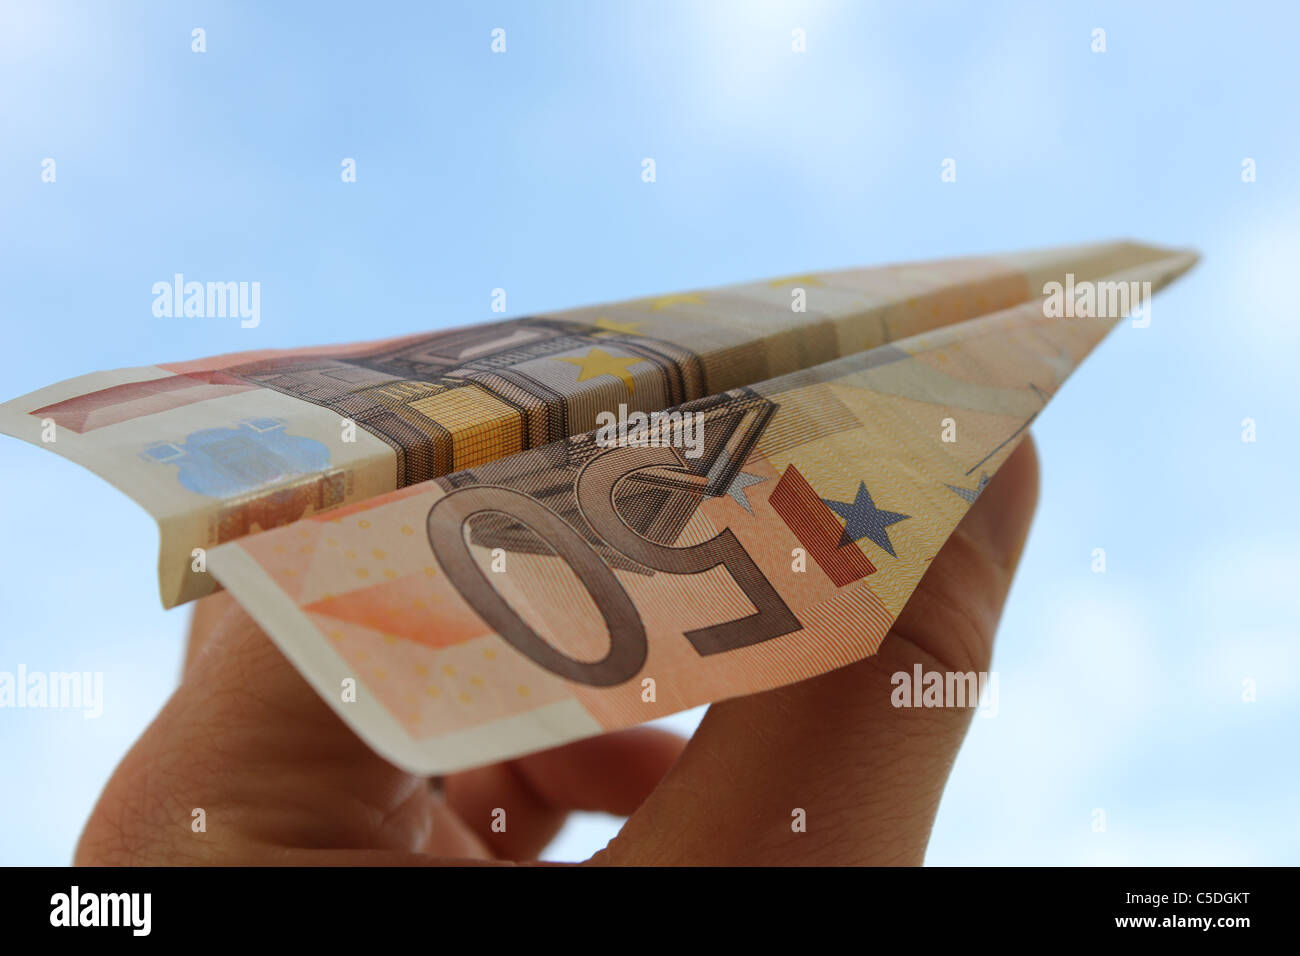 paper plane made from a 50 euro note - Stock Image